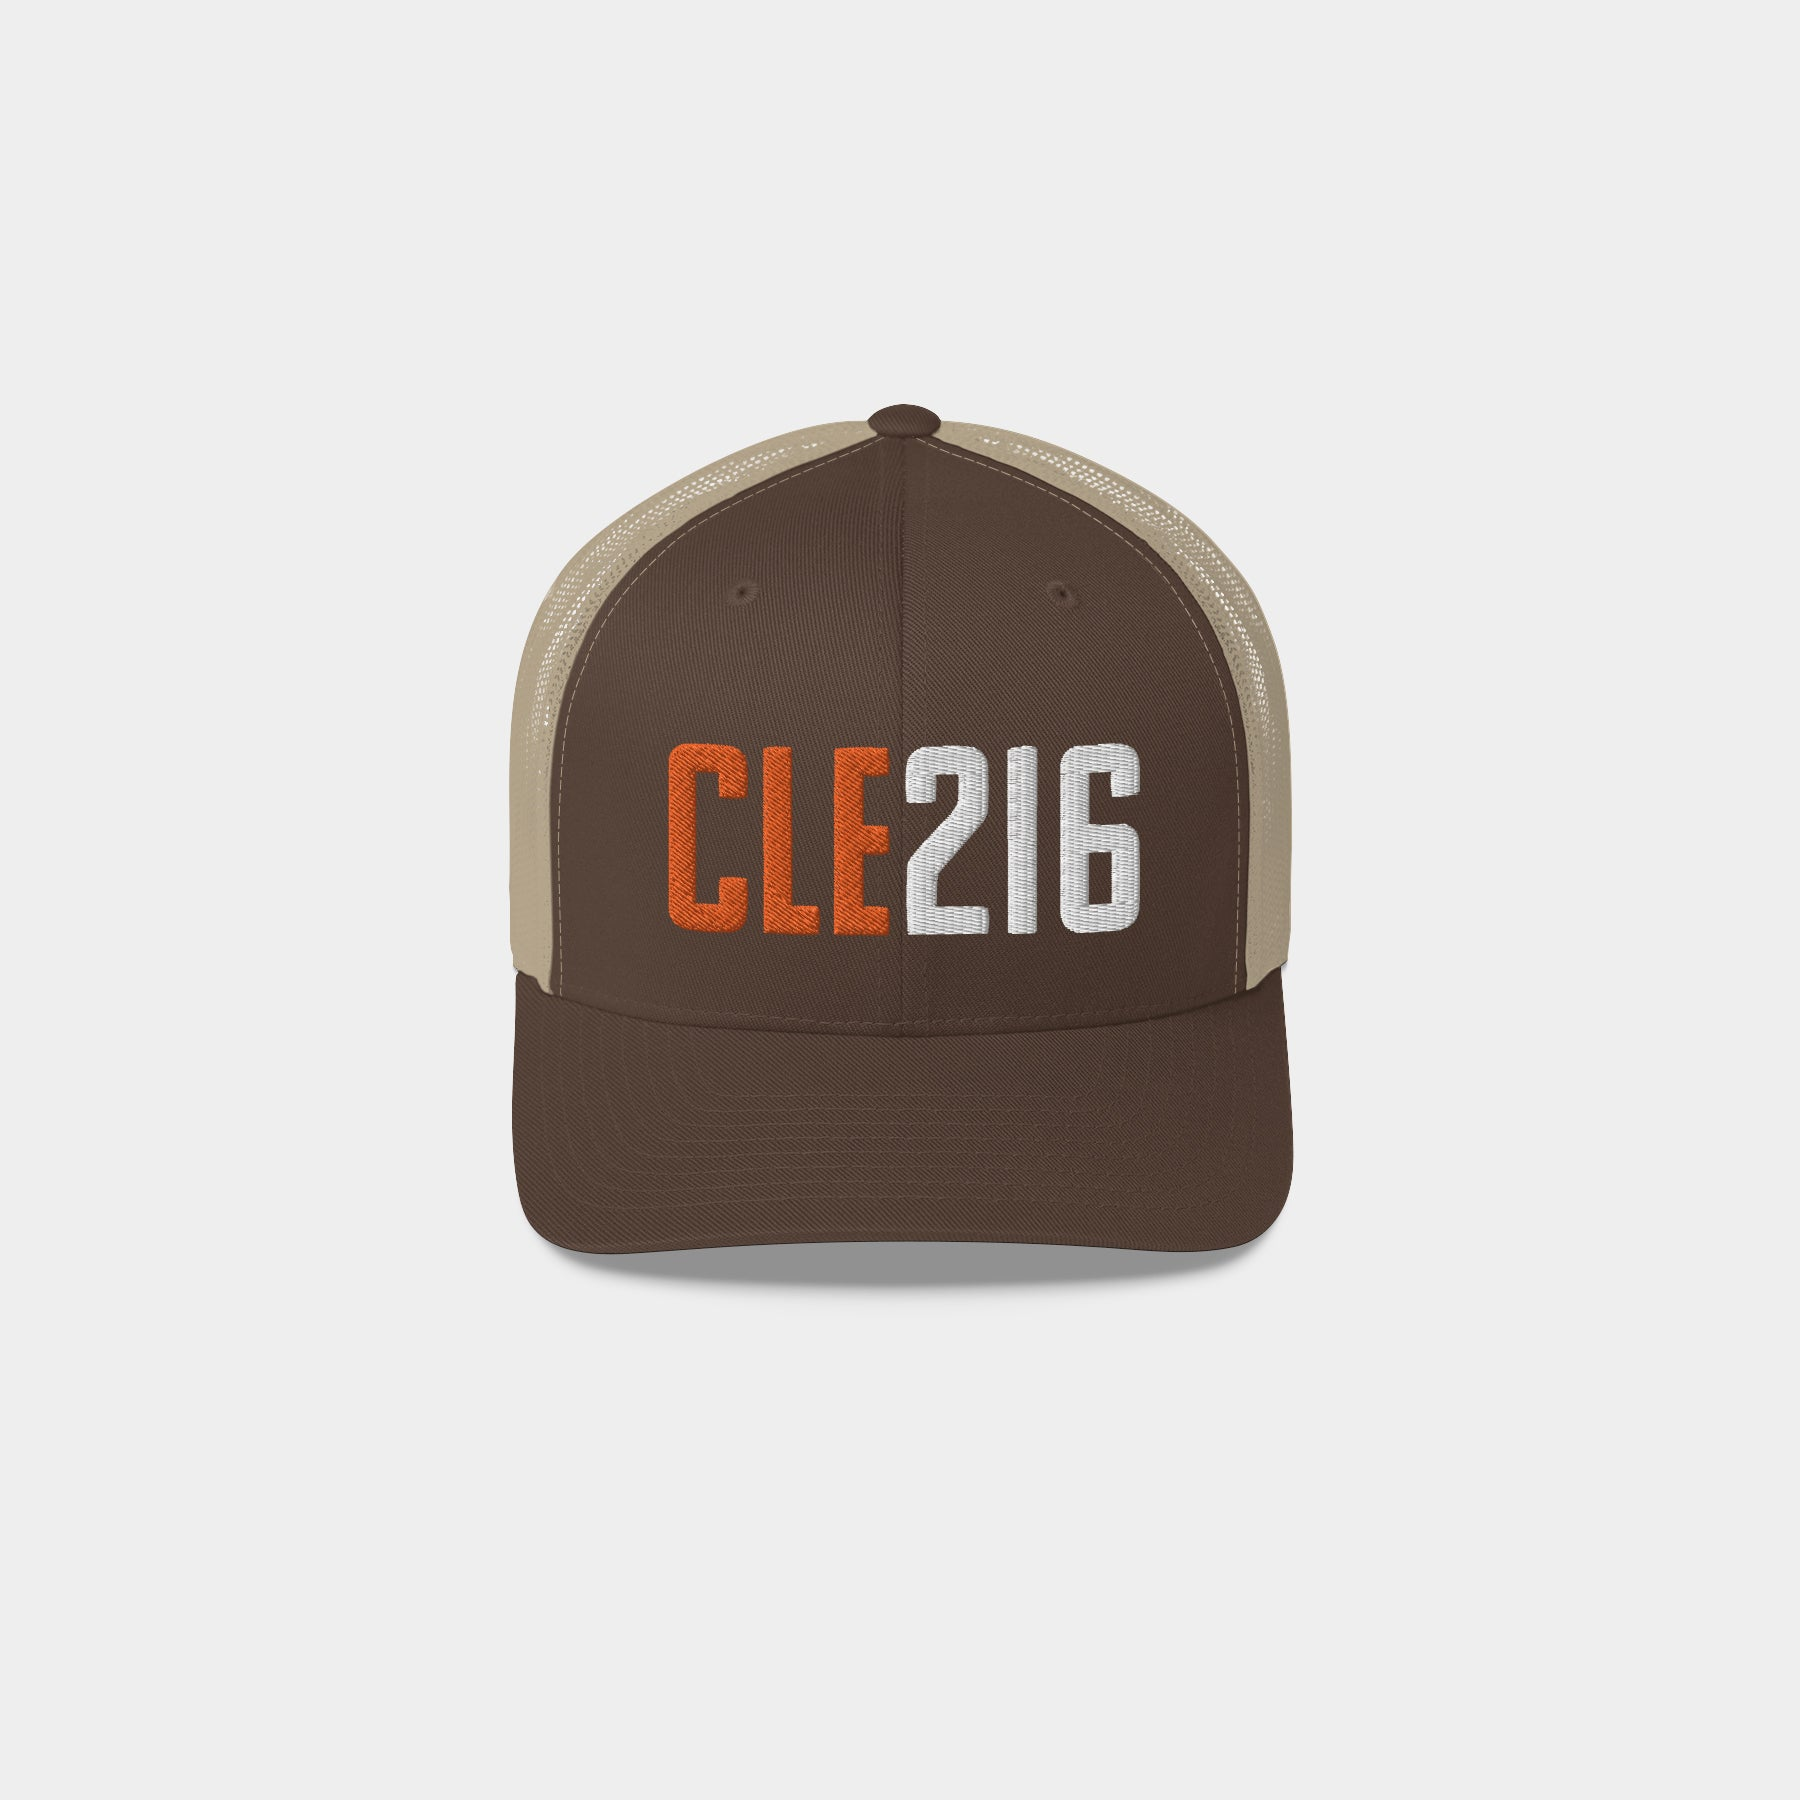 CLE216 Retro Trucker Hat, Brown